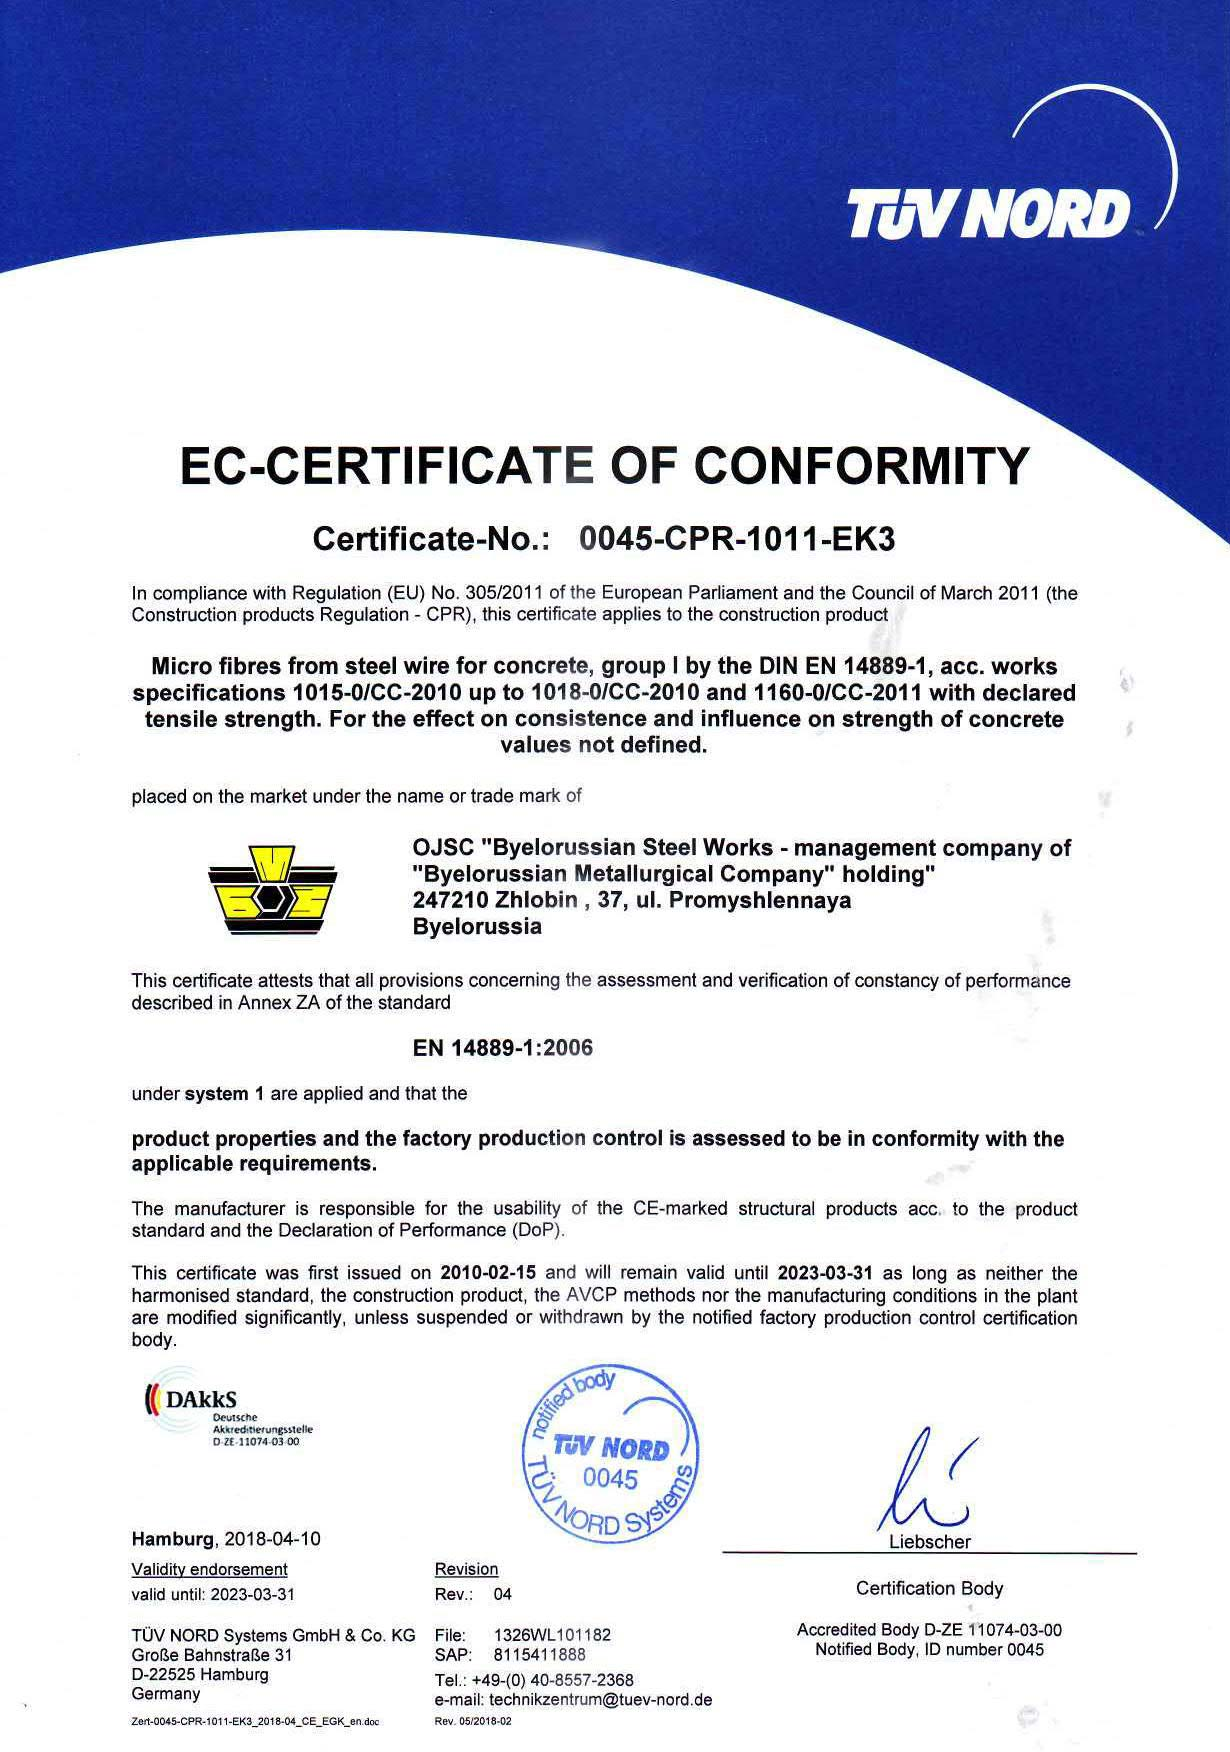 Certificate TUV NORD (Germany)No0045-CPD-1011-EK3 for production of steel microfiber for concrete according to the requirements of DIN EN 14889-1:2006 and Directive 89/106/EC (the right to apply CE-mark).